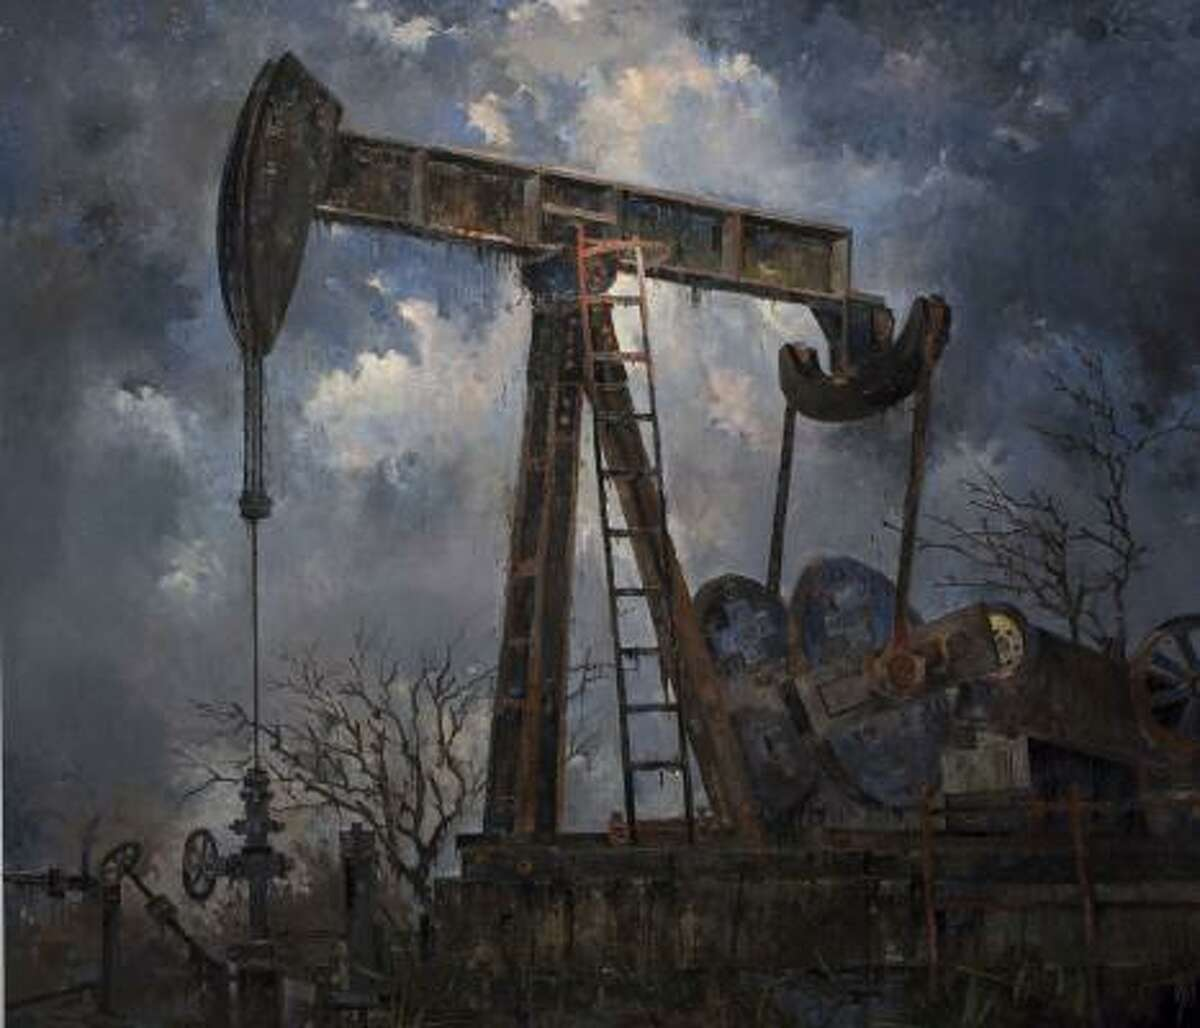 John Alexander's realism is evident in his 2008 painting, Big Oil.